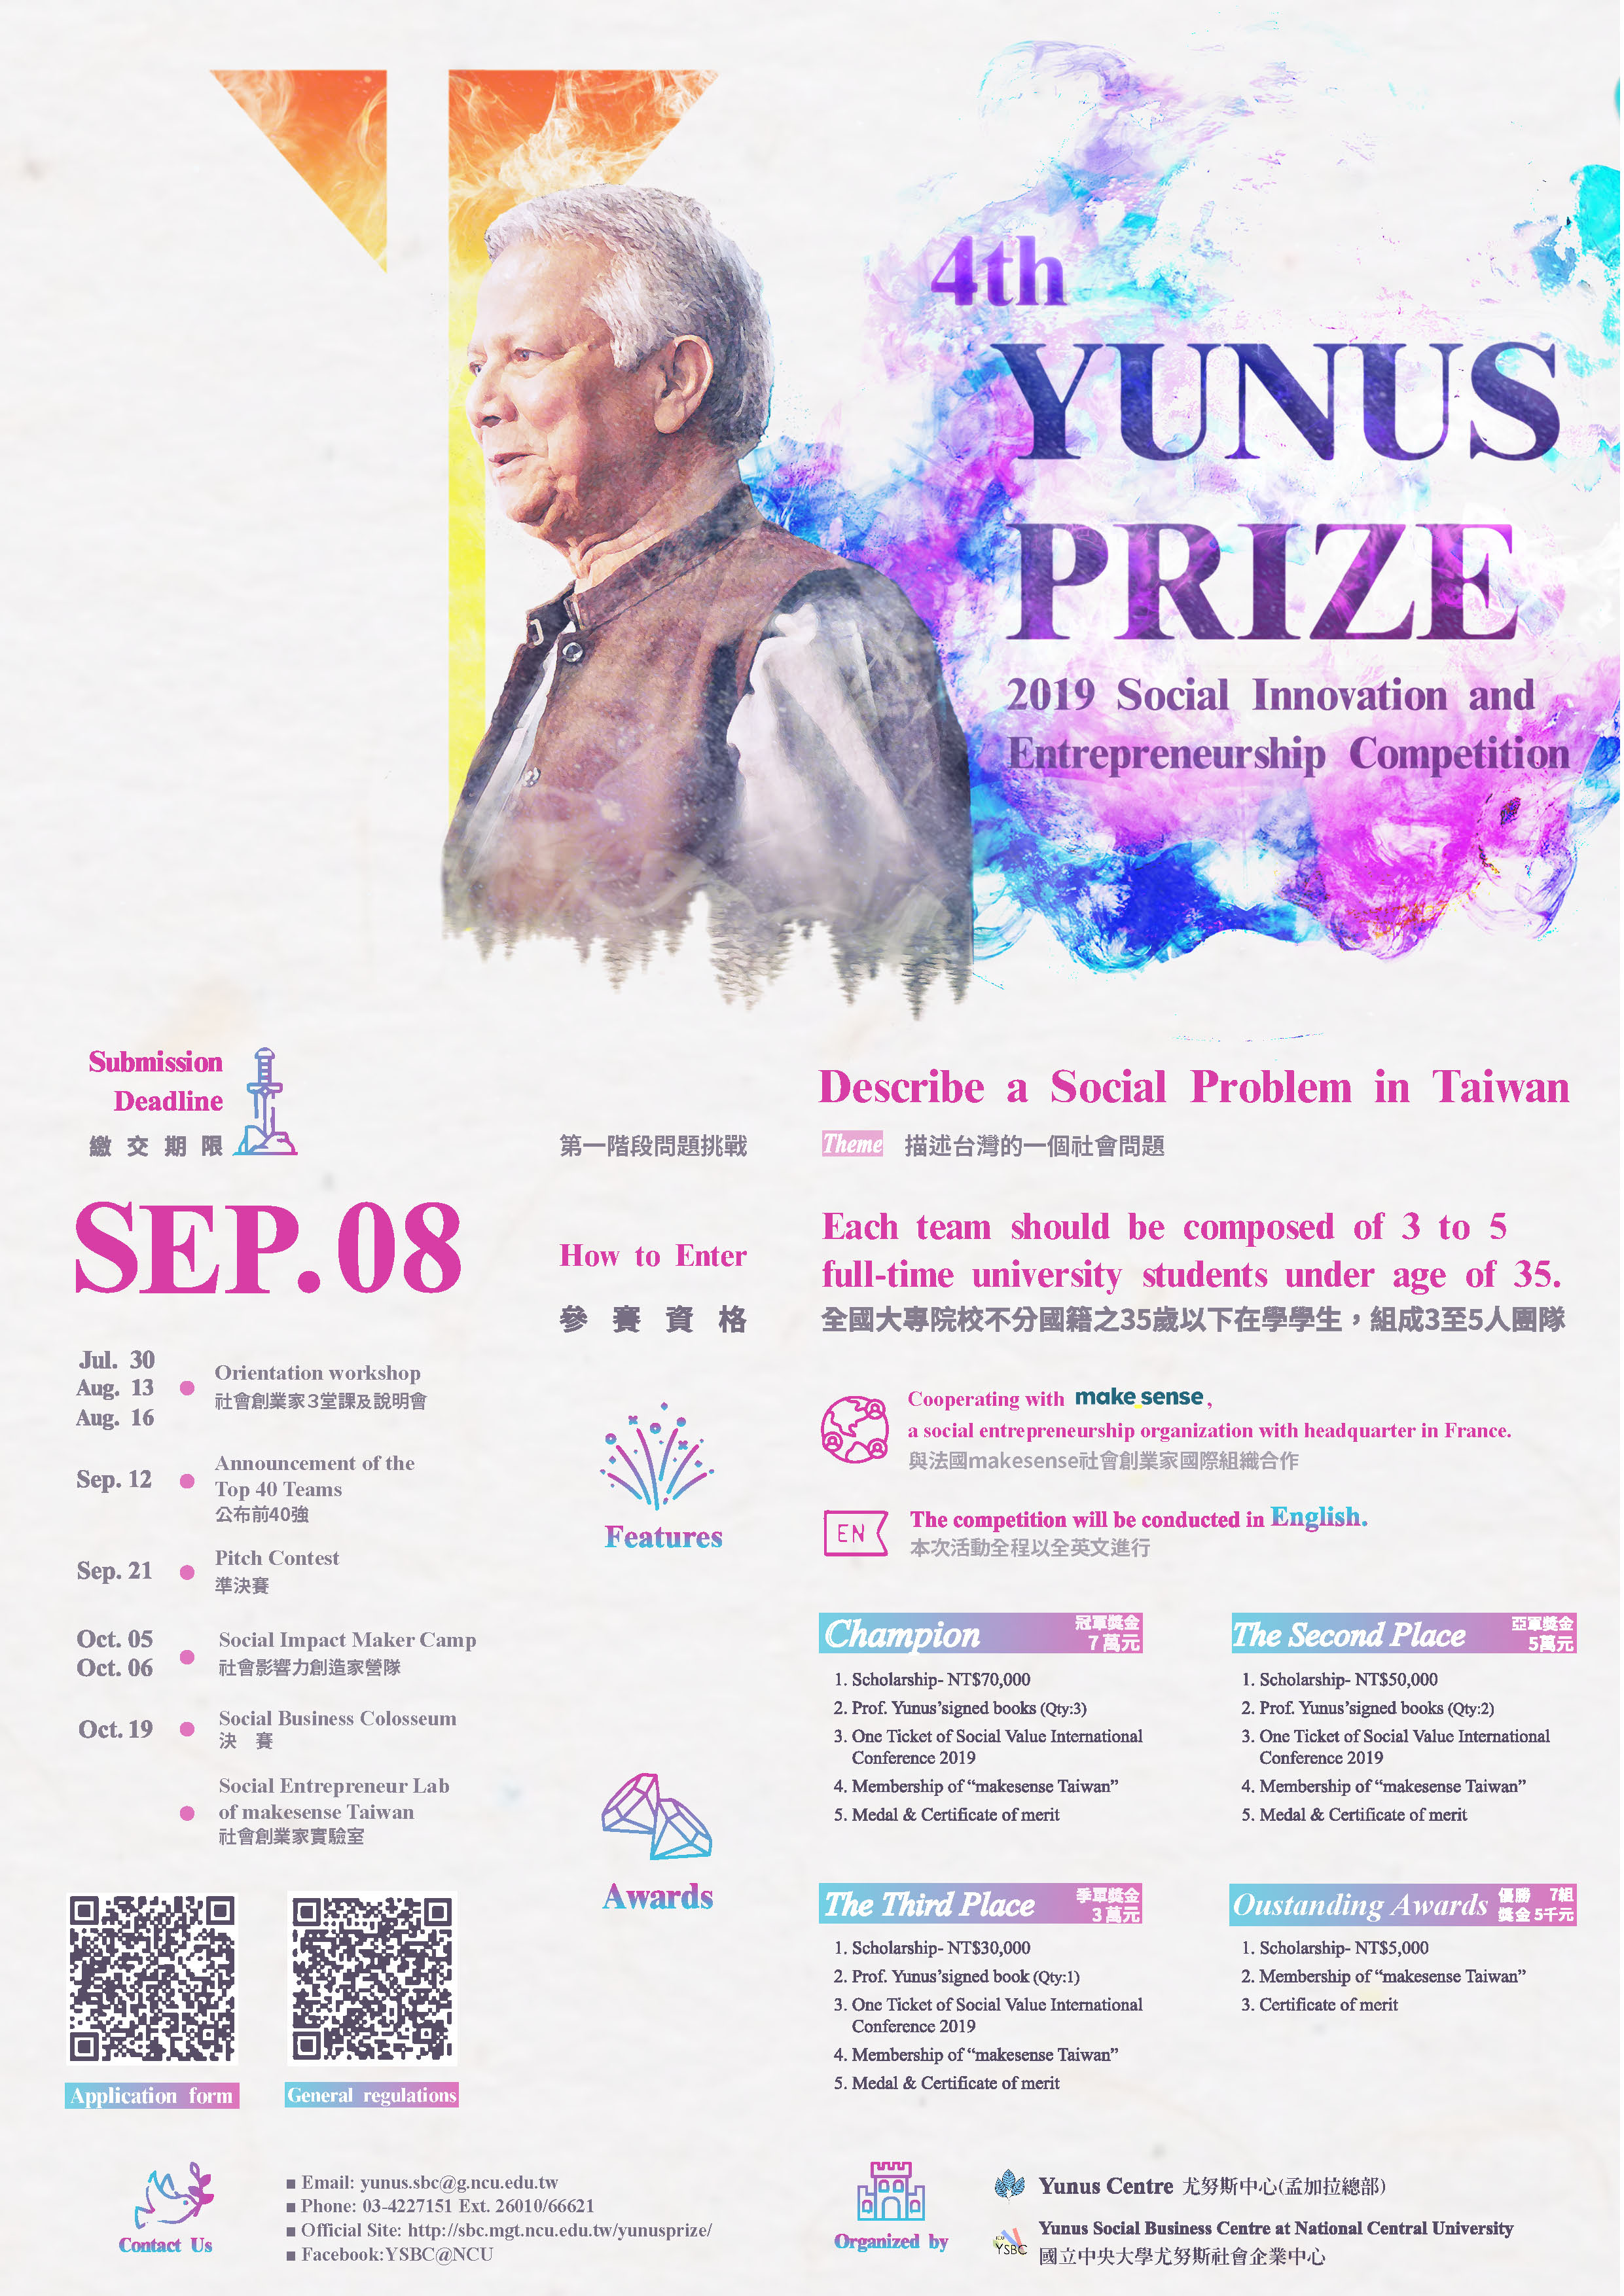 【Yunus Prize】2019 Social Innovation and Entrepreneurship Competition & Orientation workshop